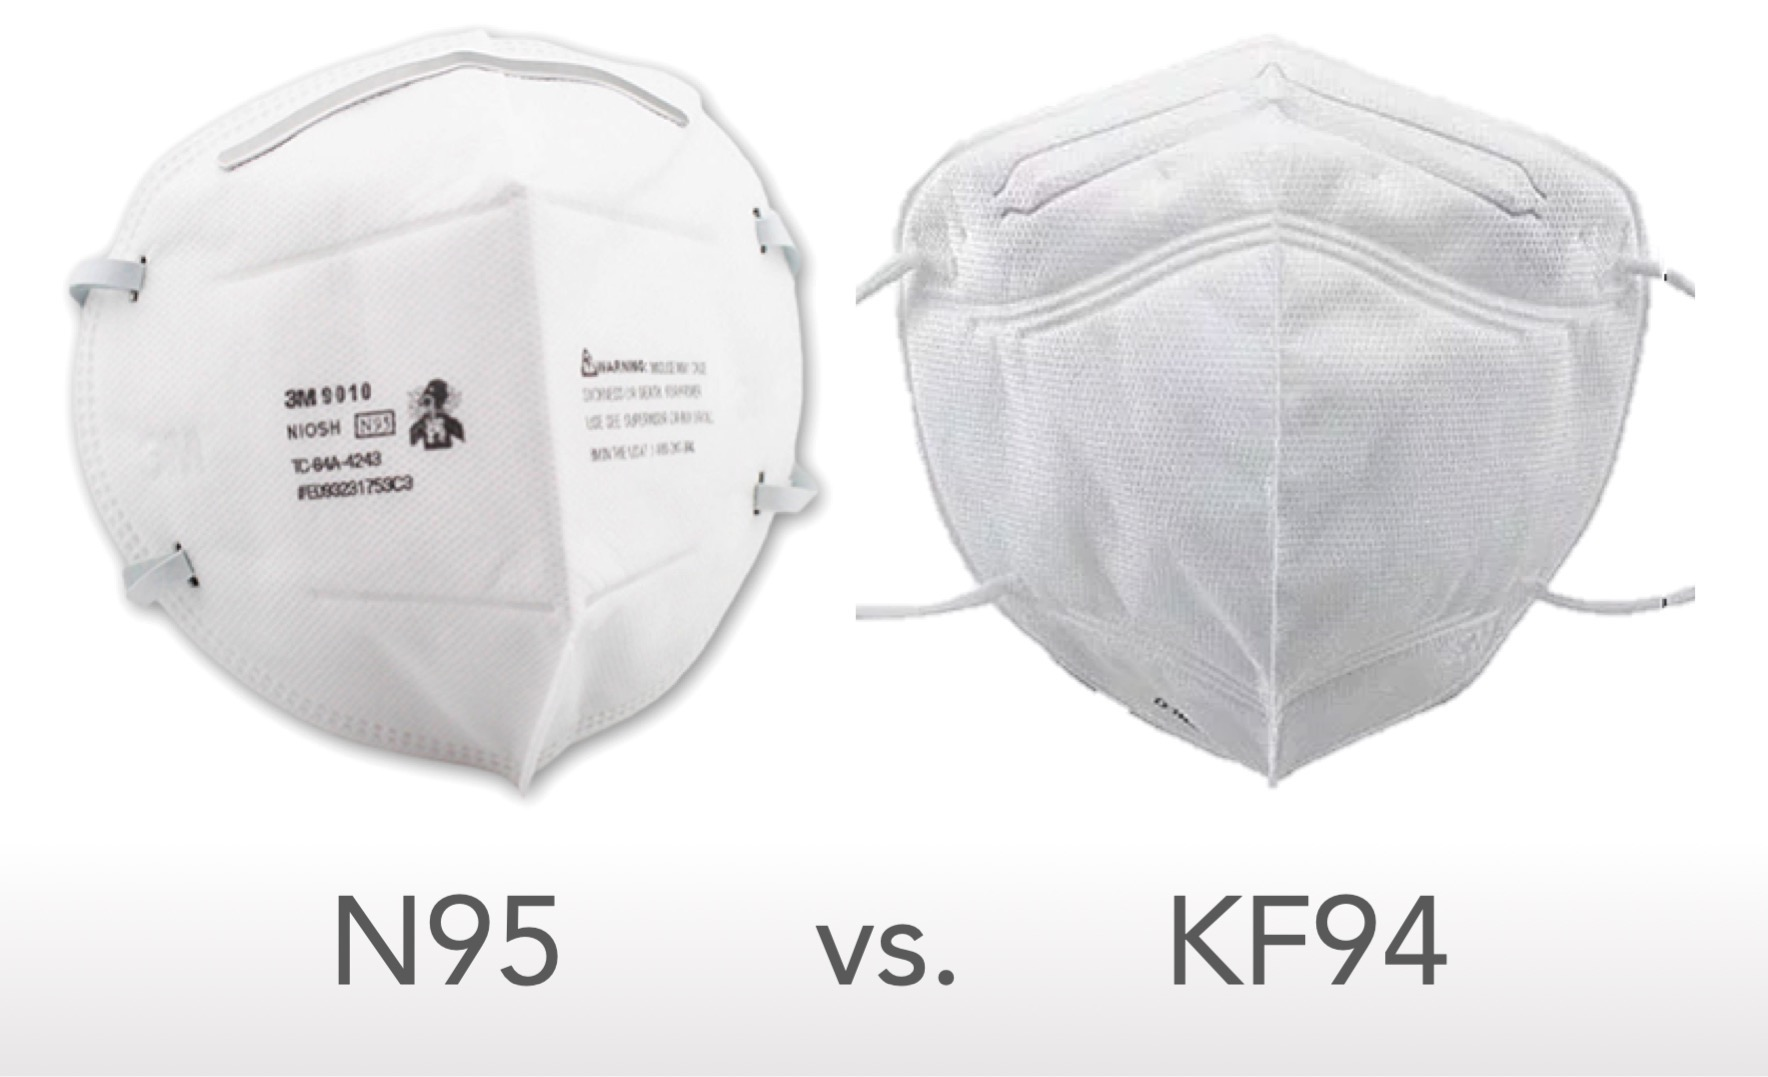 N95 vs KF94 Mask Ratings